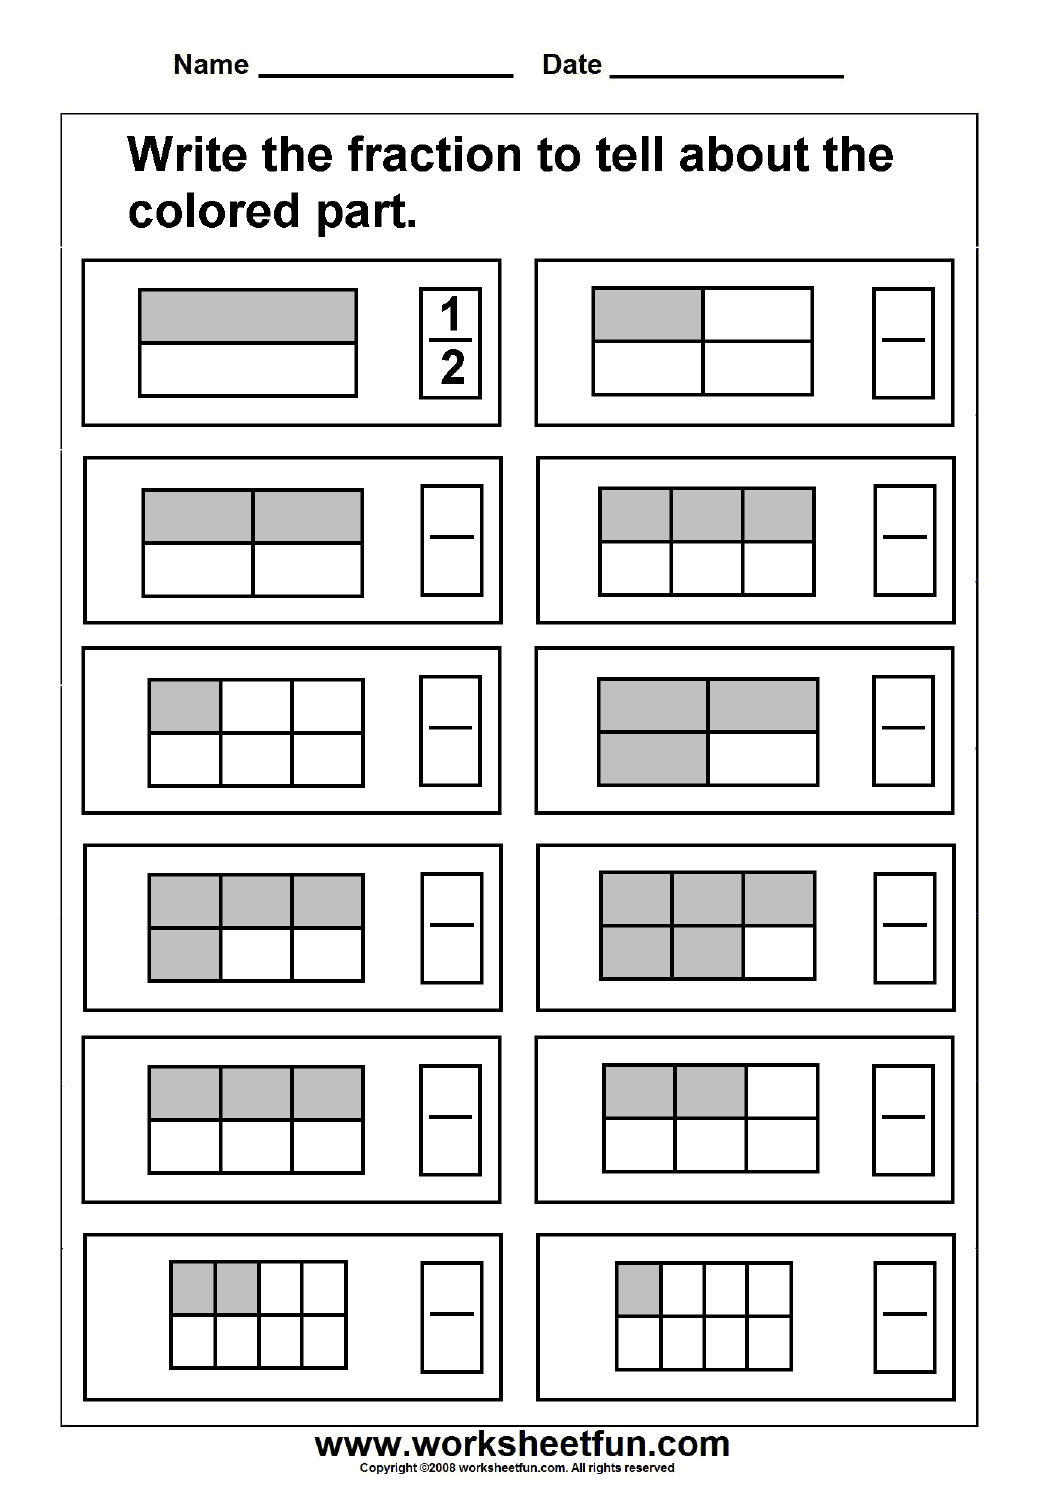 Fraction Model FREE Printable Worksheets Worksheetfun – Model Equivalent Fractions Worksheet